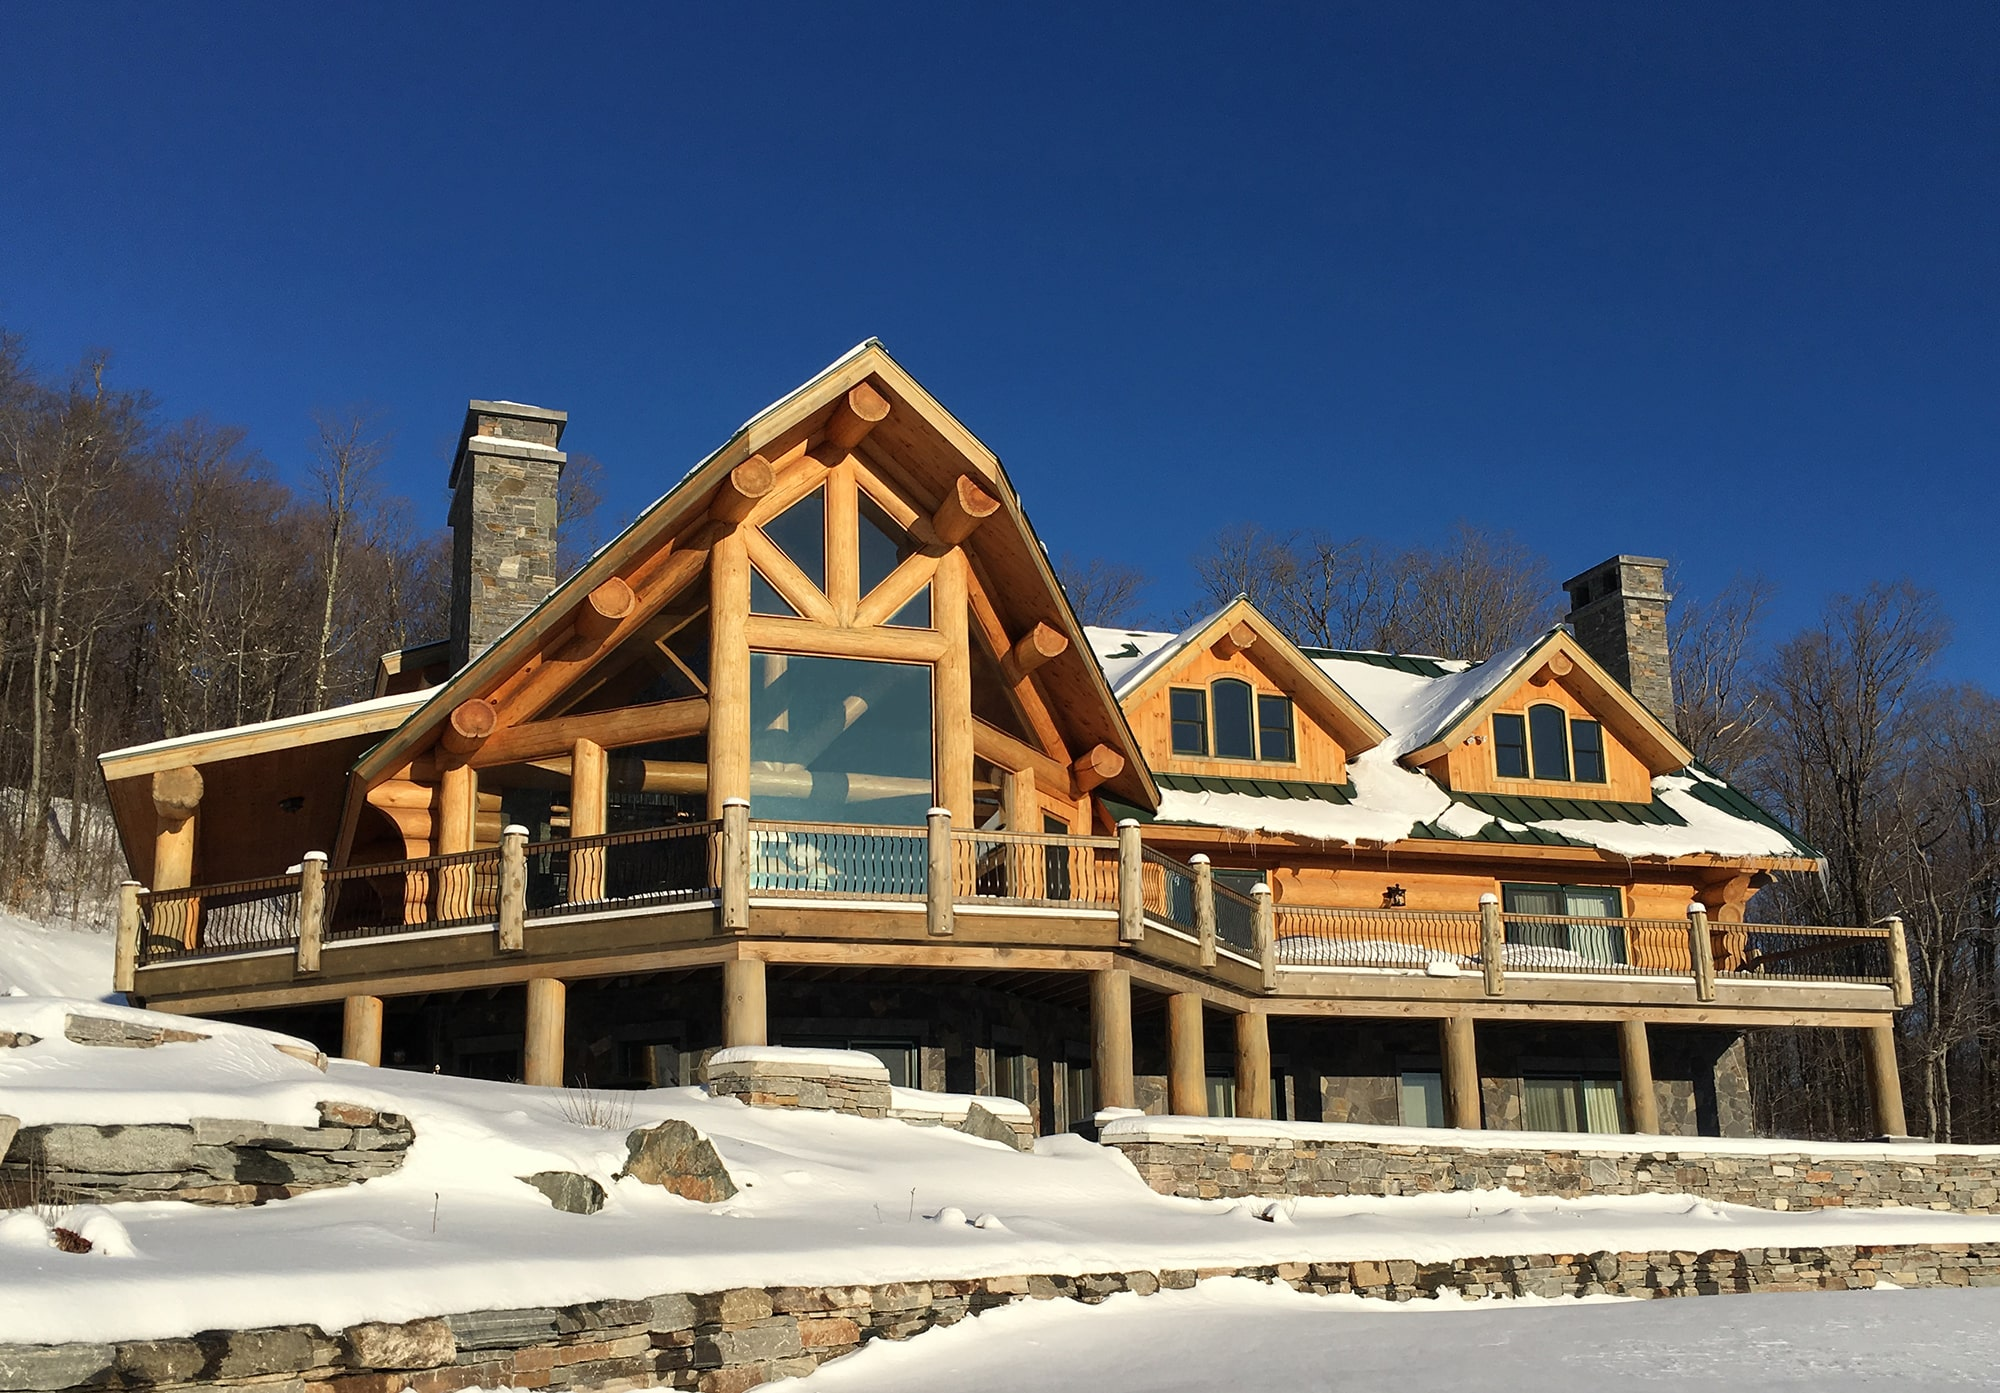 Luxury custom log cabin dream home in Vermont